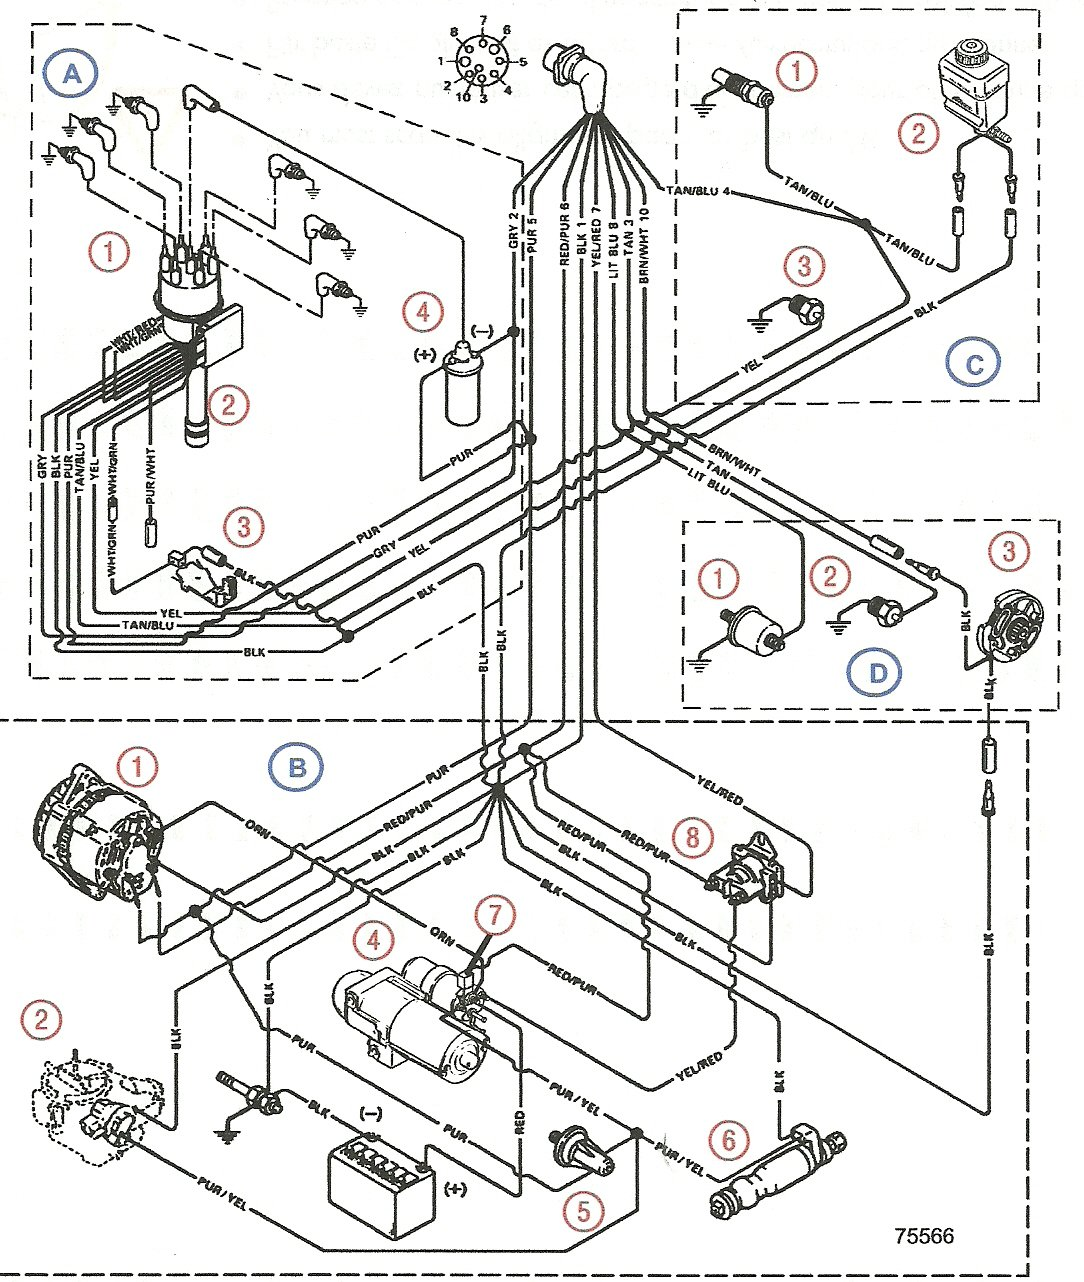 Mercruiser 7.4 Wiring Diagram